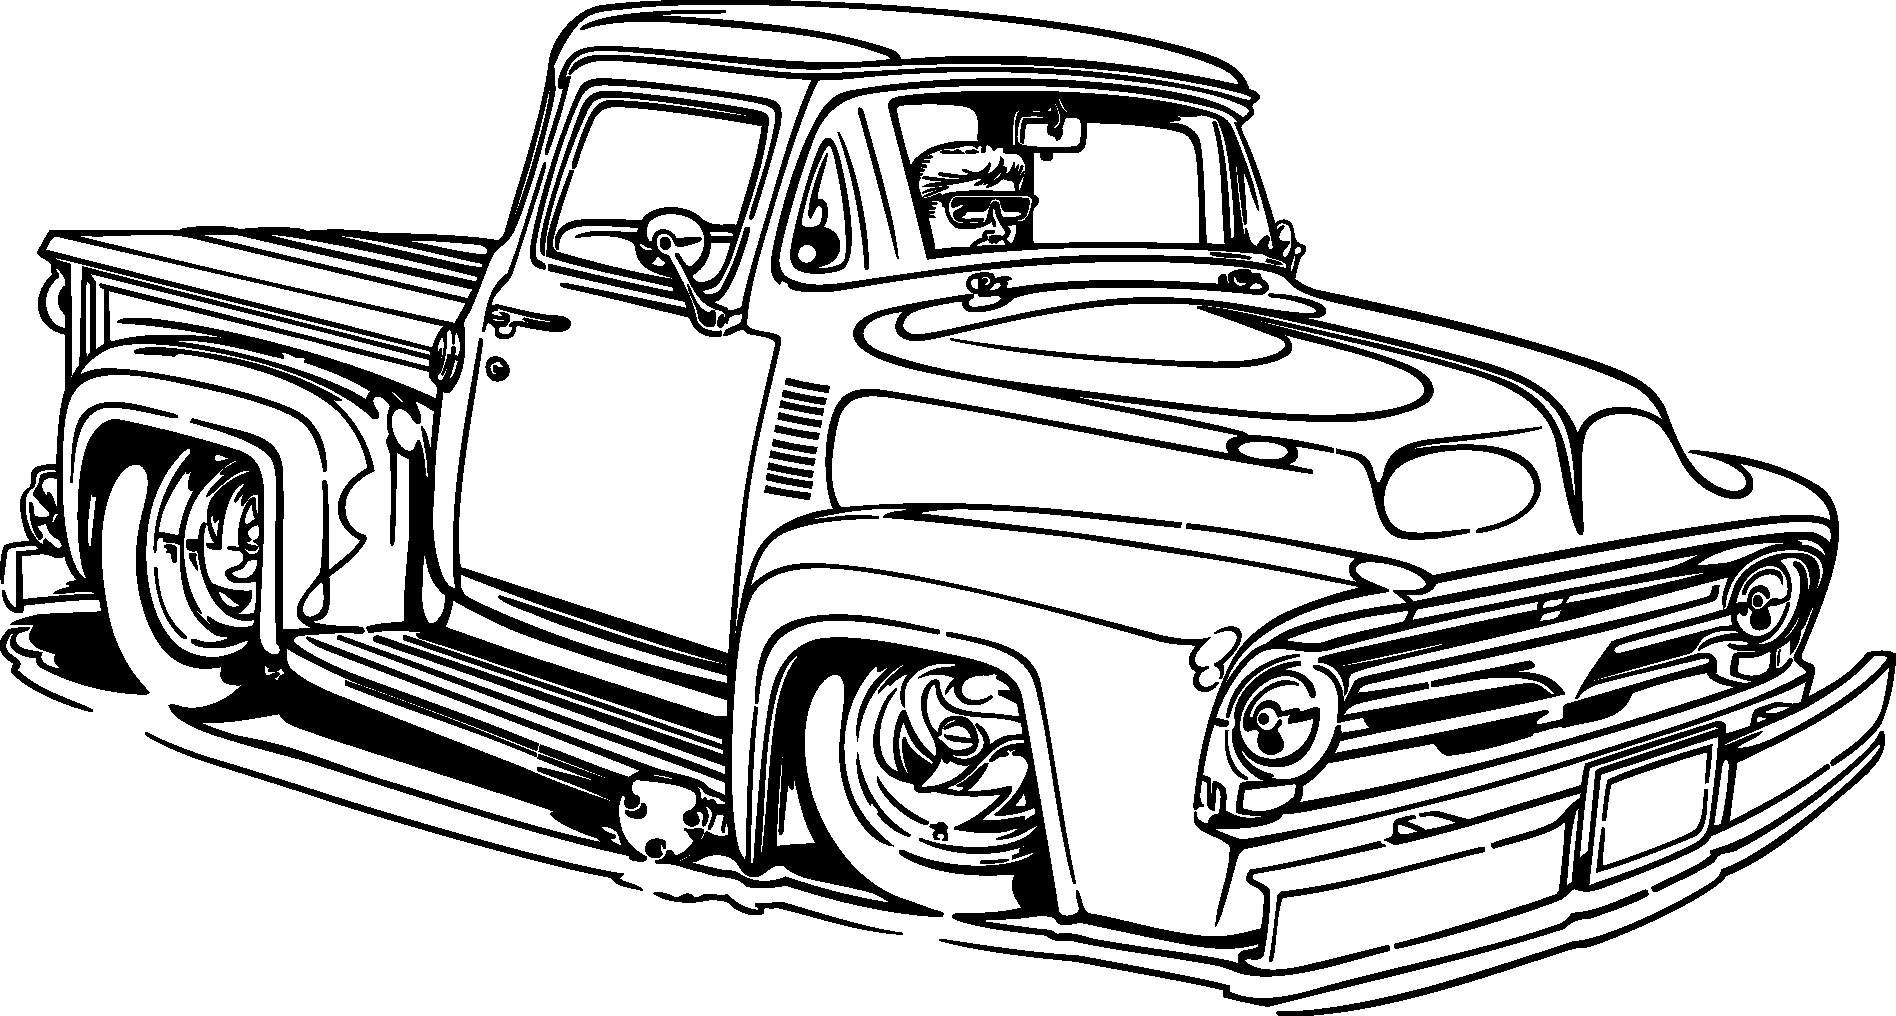 Free classic car clipart clipart royalty free library Classic Car Silhouette at GetDrawings.com | Free for personal use ... clipart royalty free library